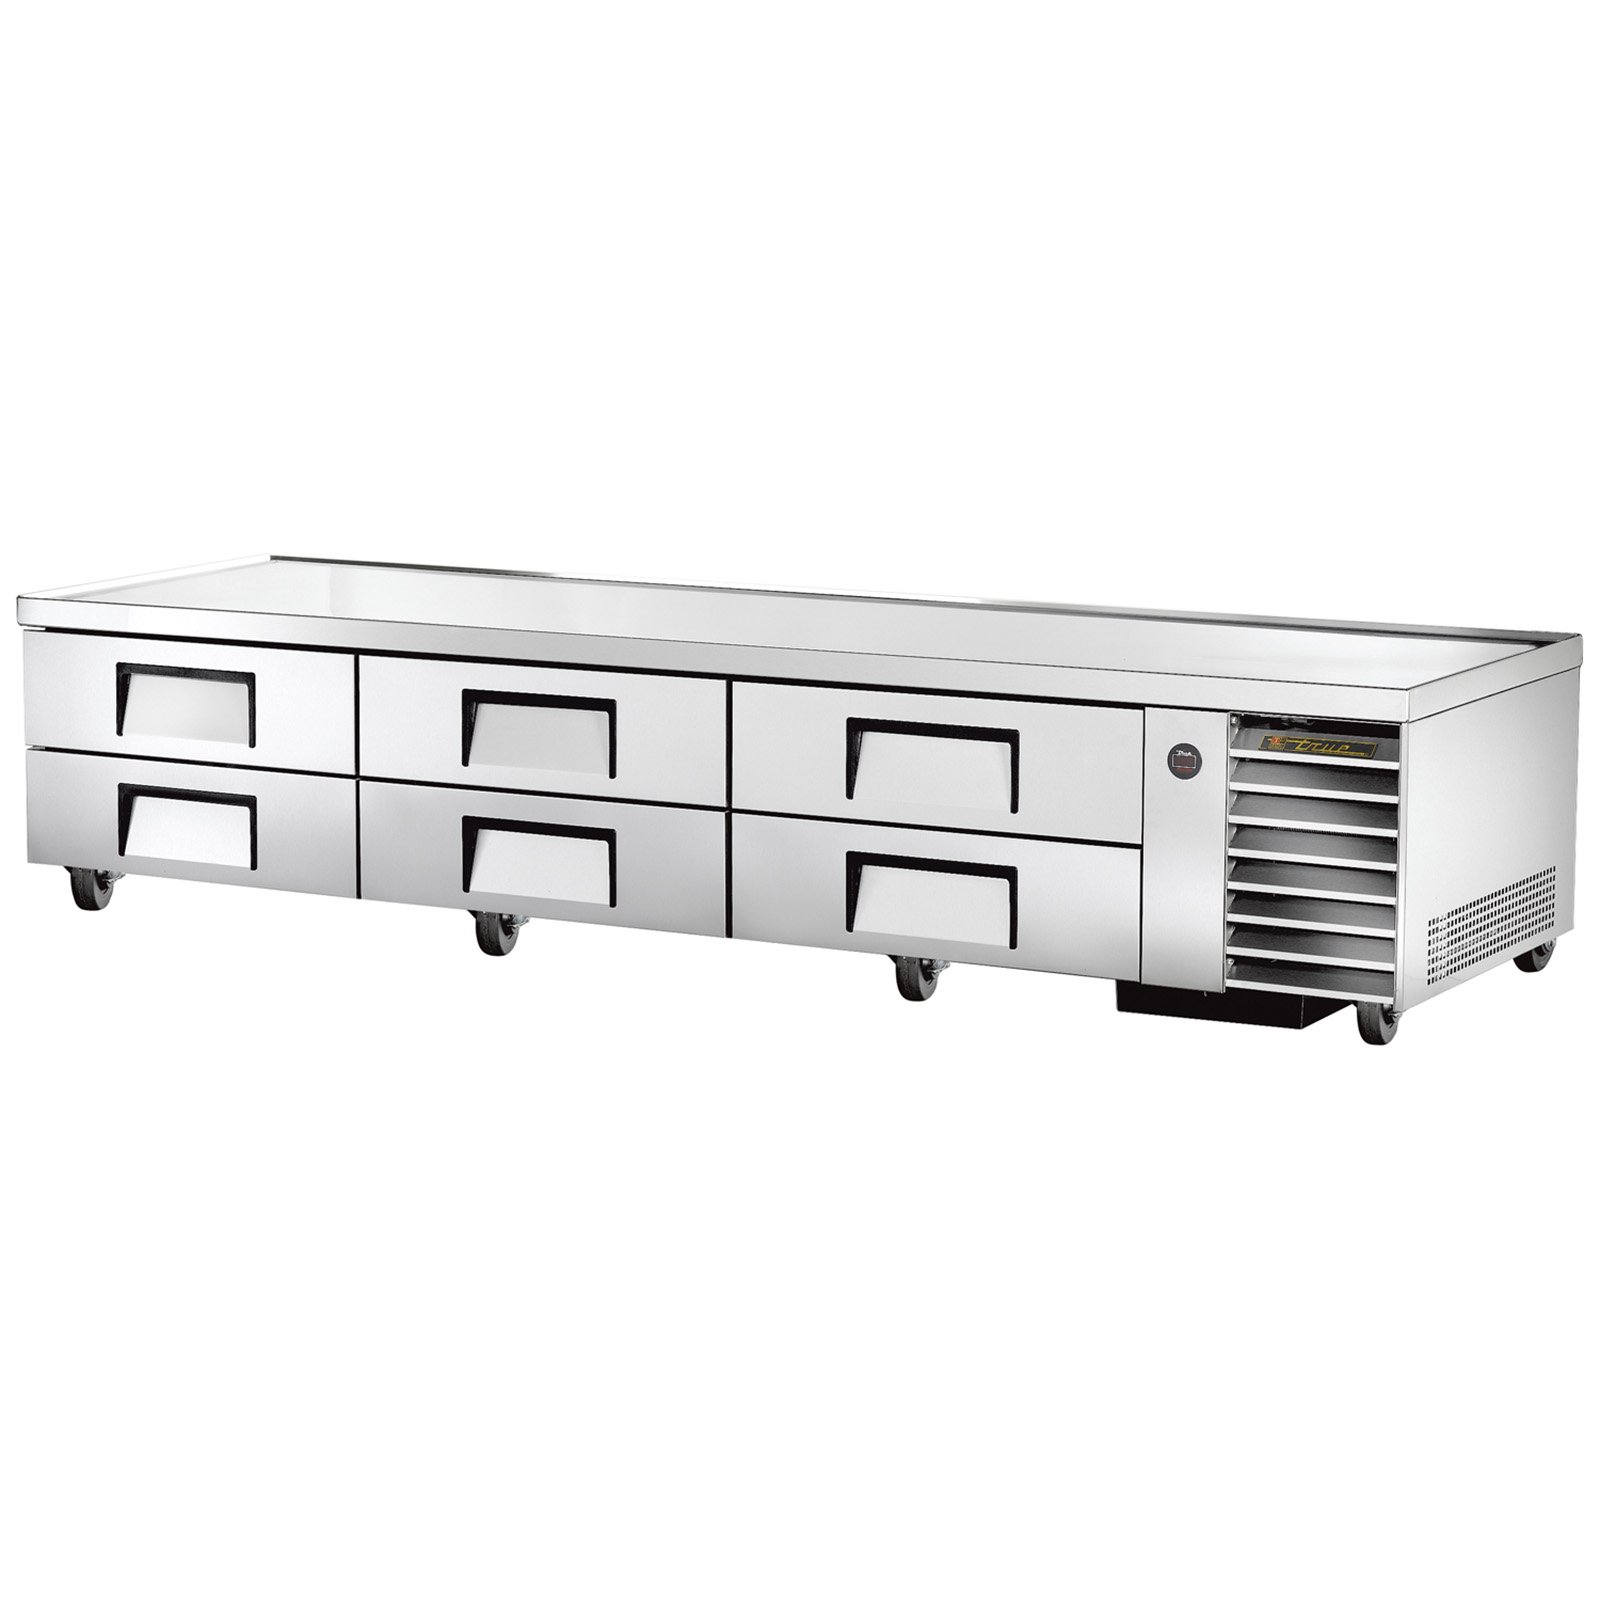 TRCB-110 True - Refrigerated Chef Base 110